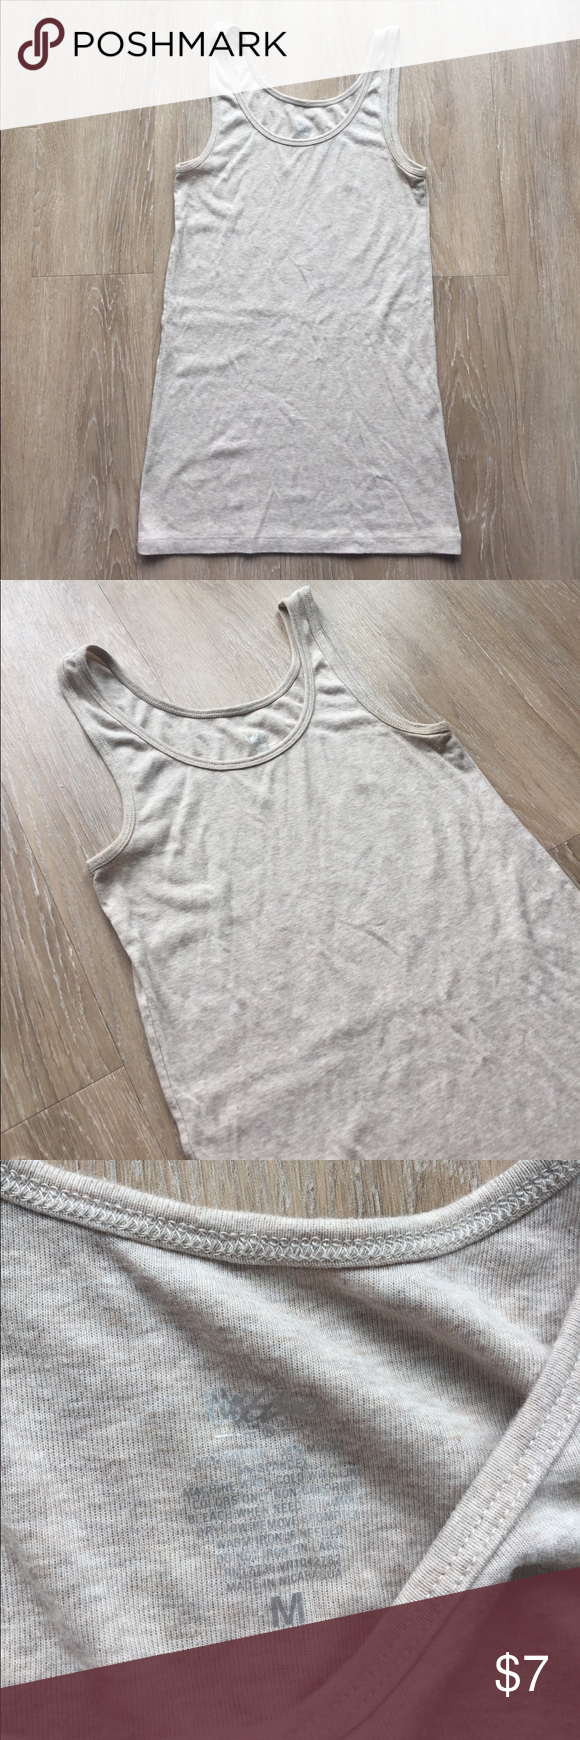 Cream tank! In great condition! 10% off bundle of 3 or more items! Smoke free home. No trades. Make me an offer! ❤😄 Mossimo Supply Co Tops Tank Tops